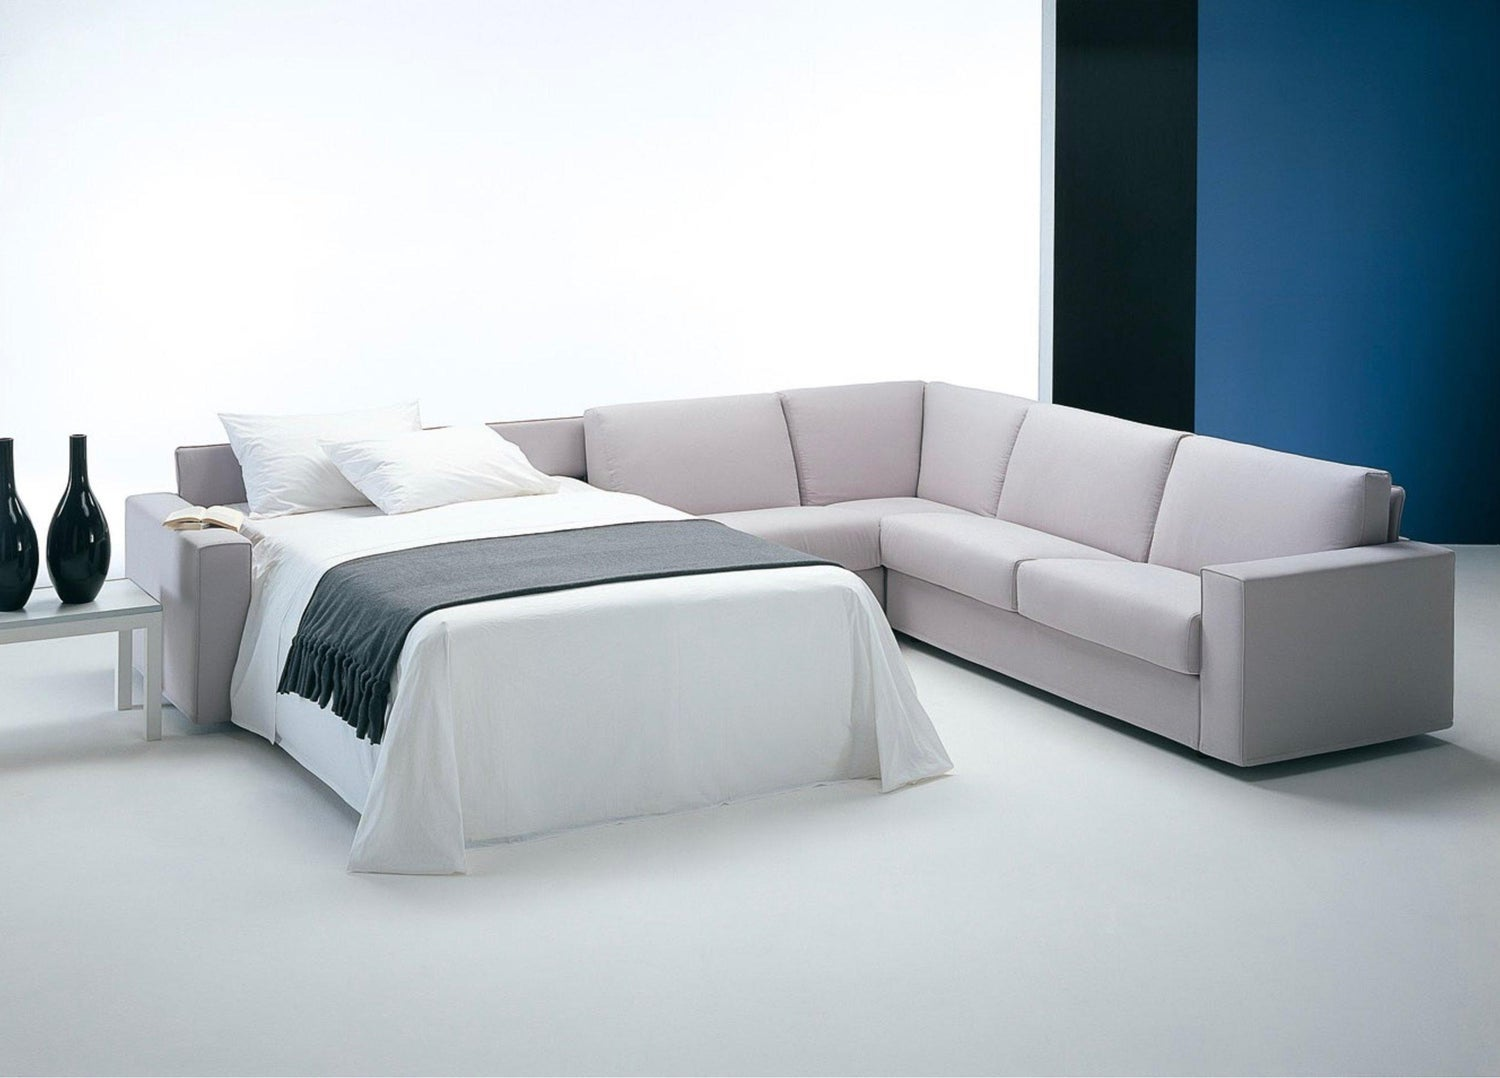 Contemporary Italian Sofa Bed with Chaise Lounge and Storage Space, New